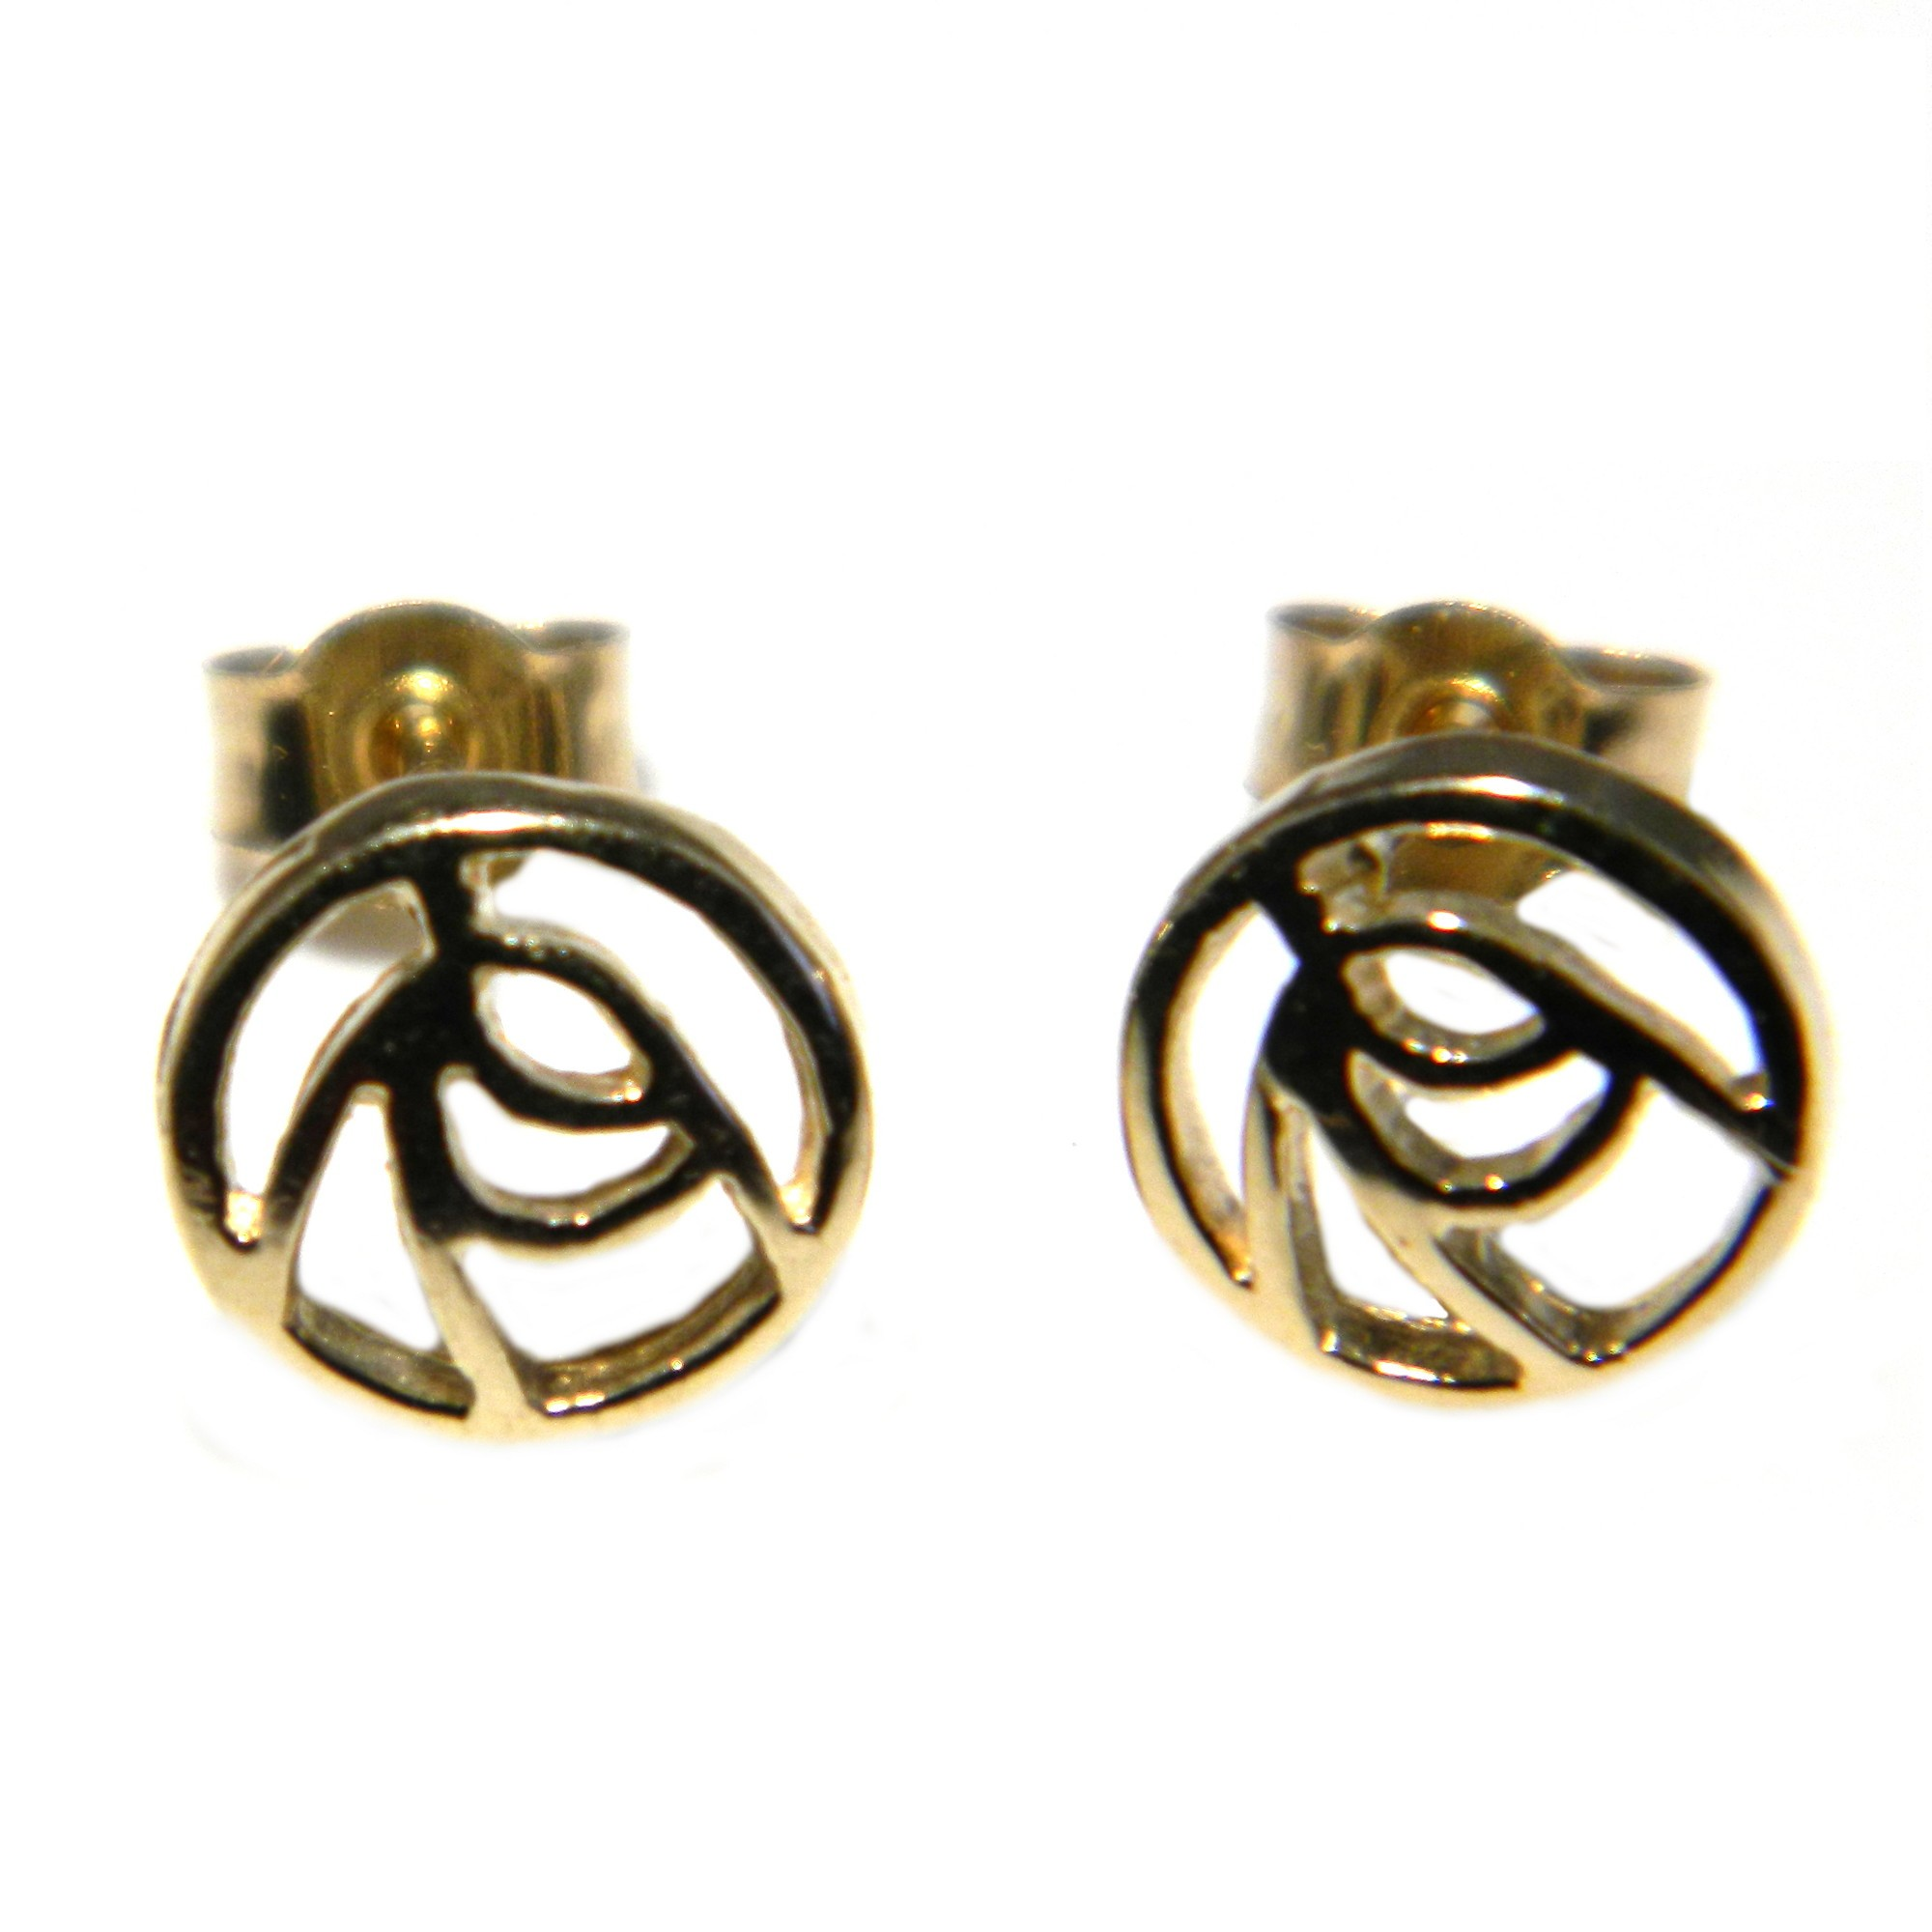 Arranview Jewellery Celtic Knotwork 8mm Stud Earring - 9ct Yellow Gold XJ4O1j1OUC